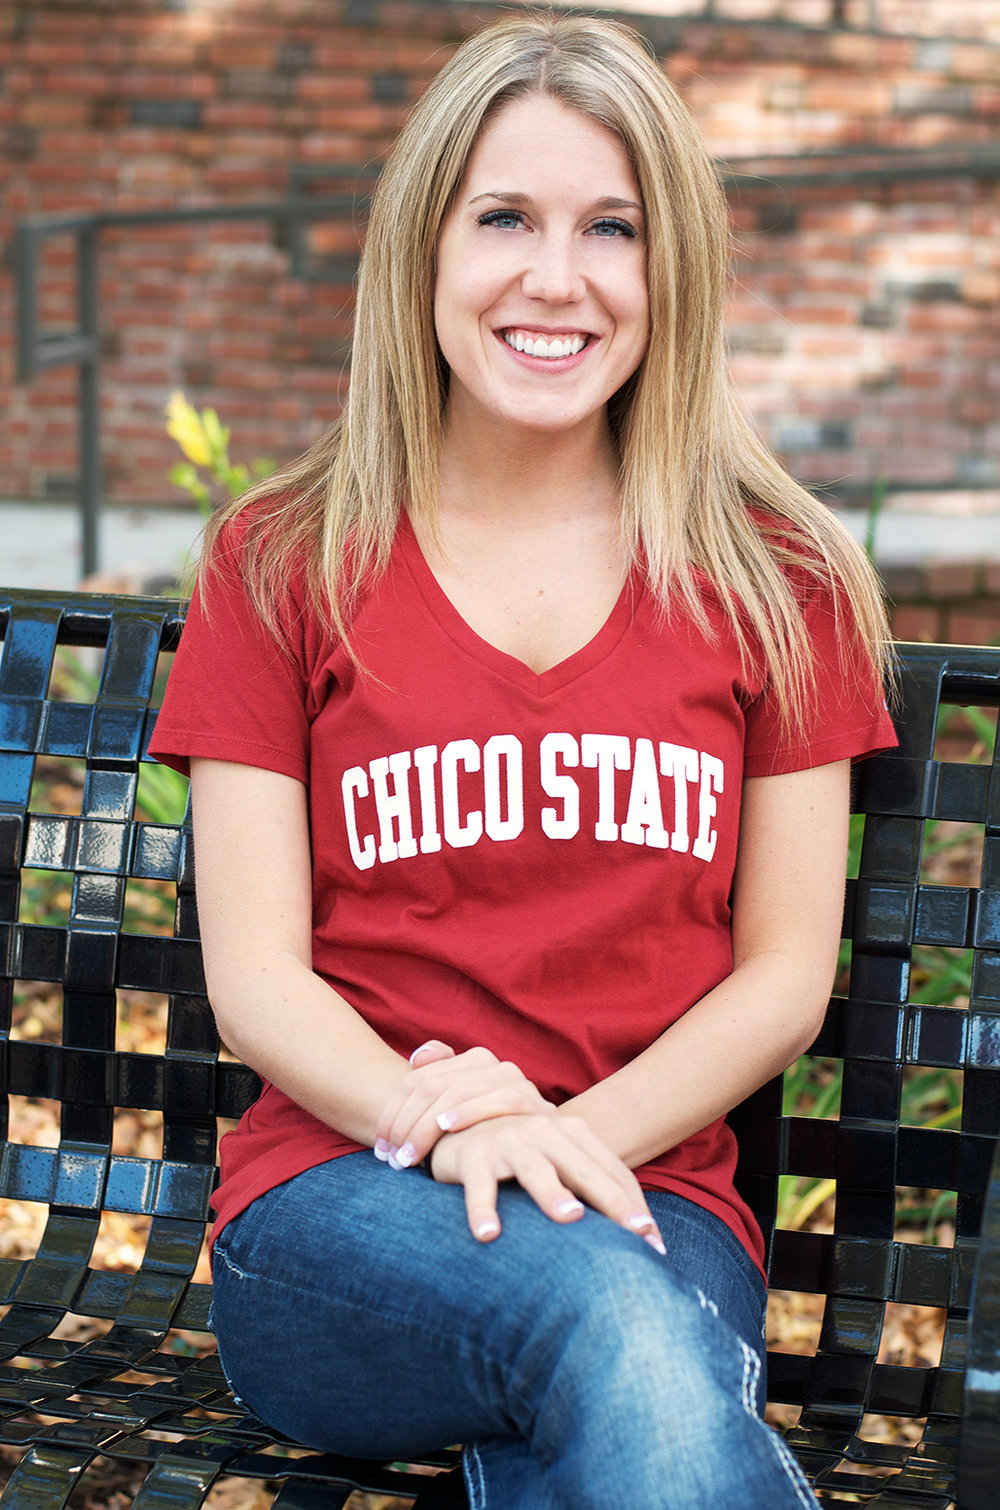 Chico State Shirt - Heather Selzer.jpg